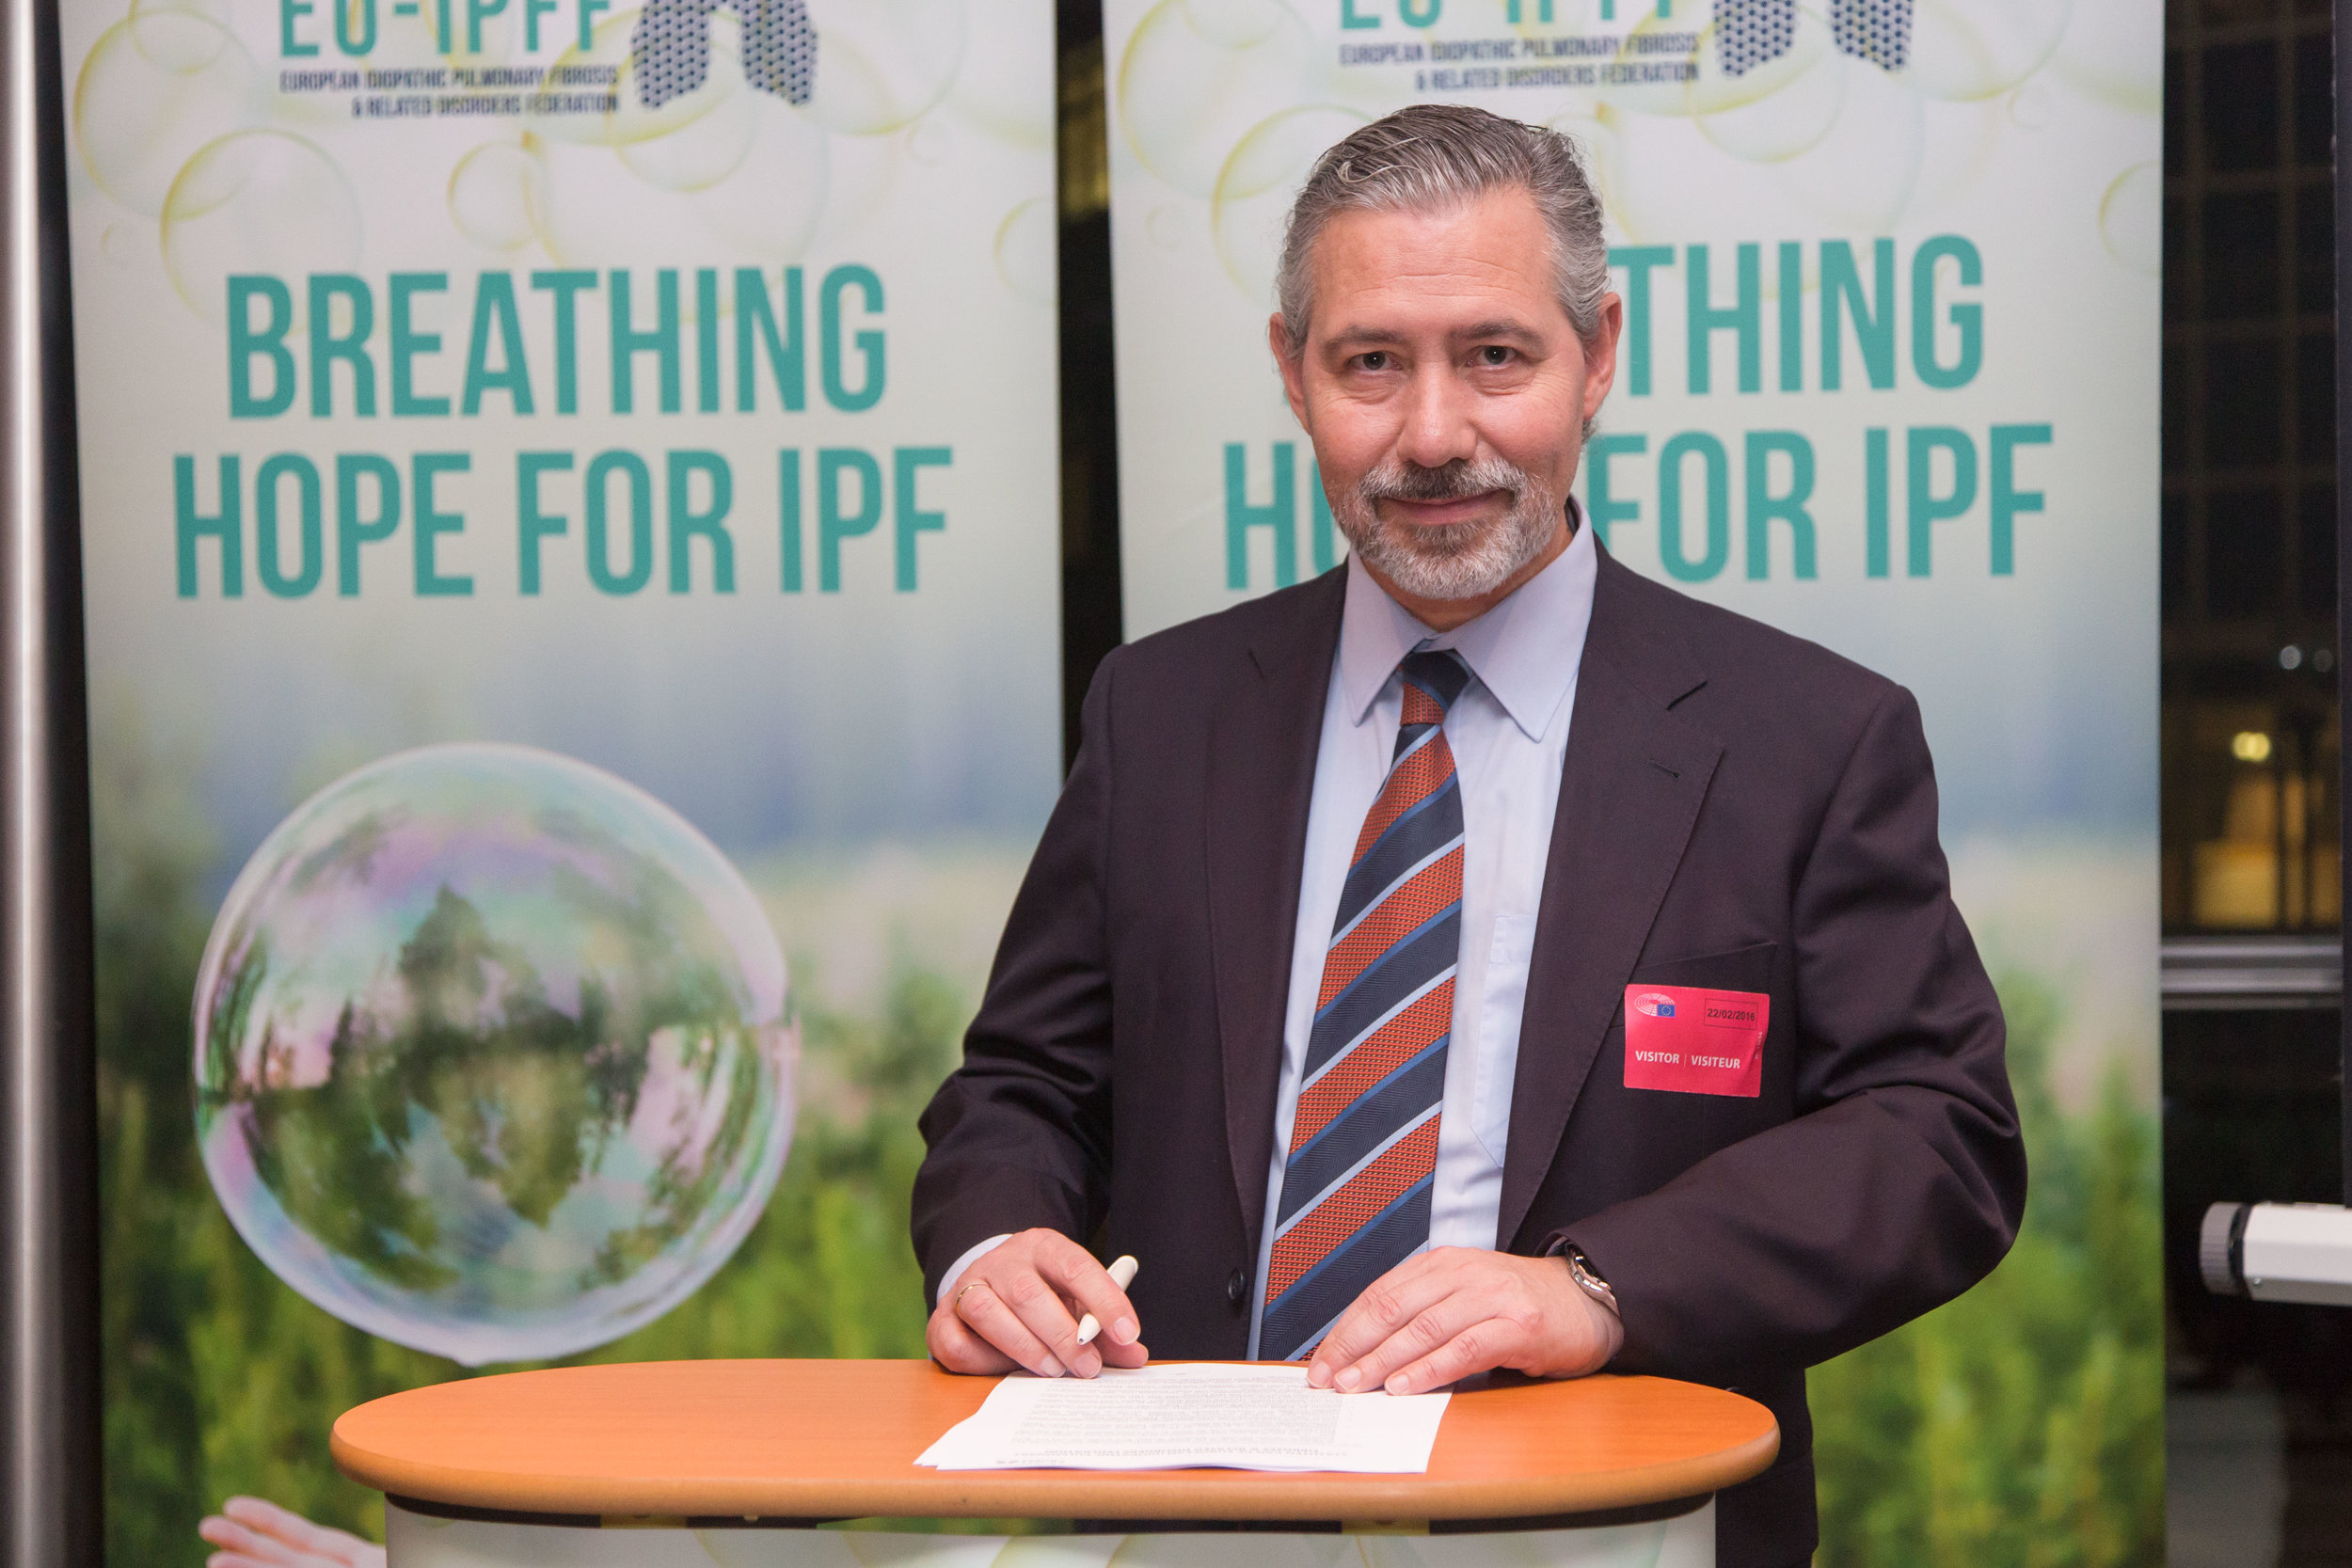 Carlos Lines Millán, President, signing the EU-IPFF Federation